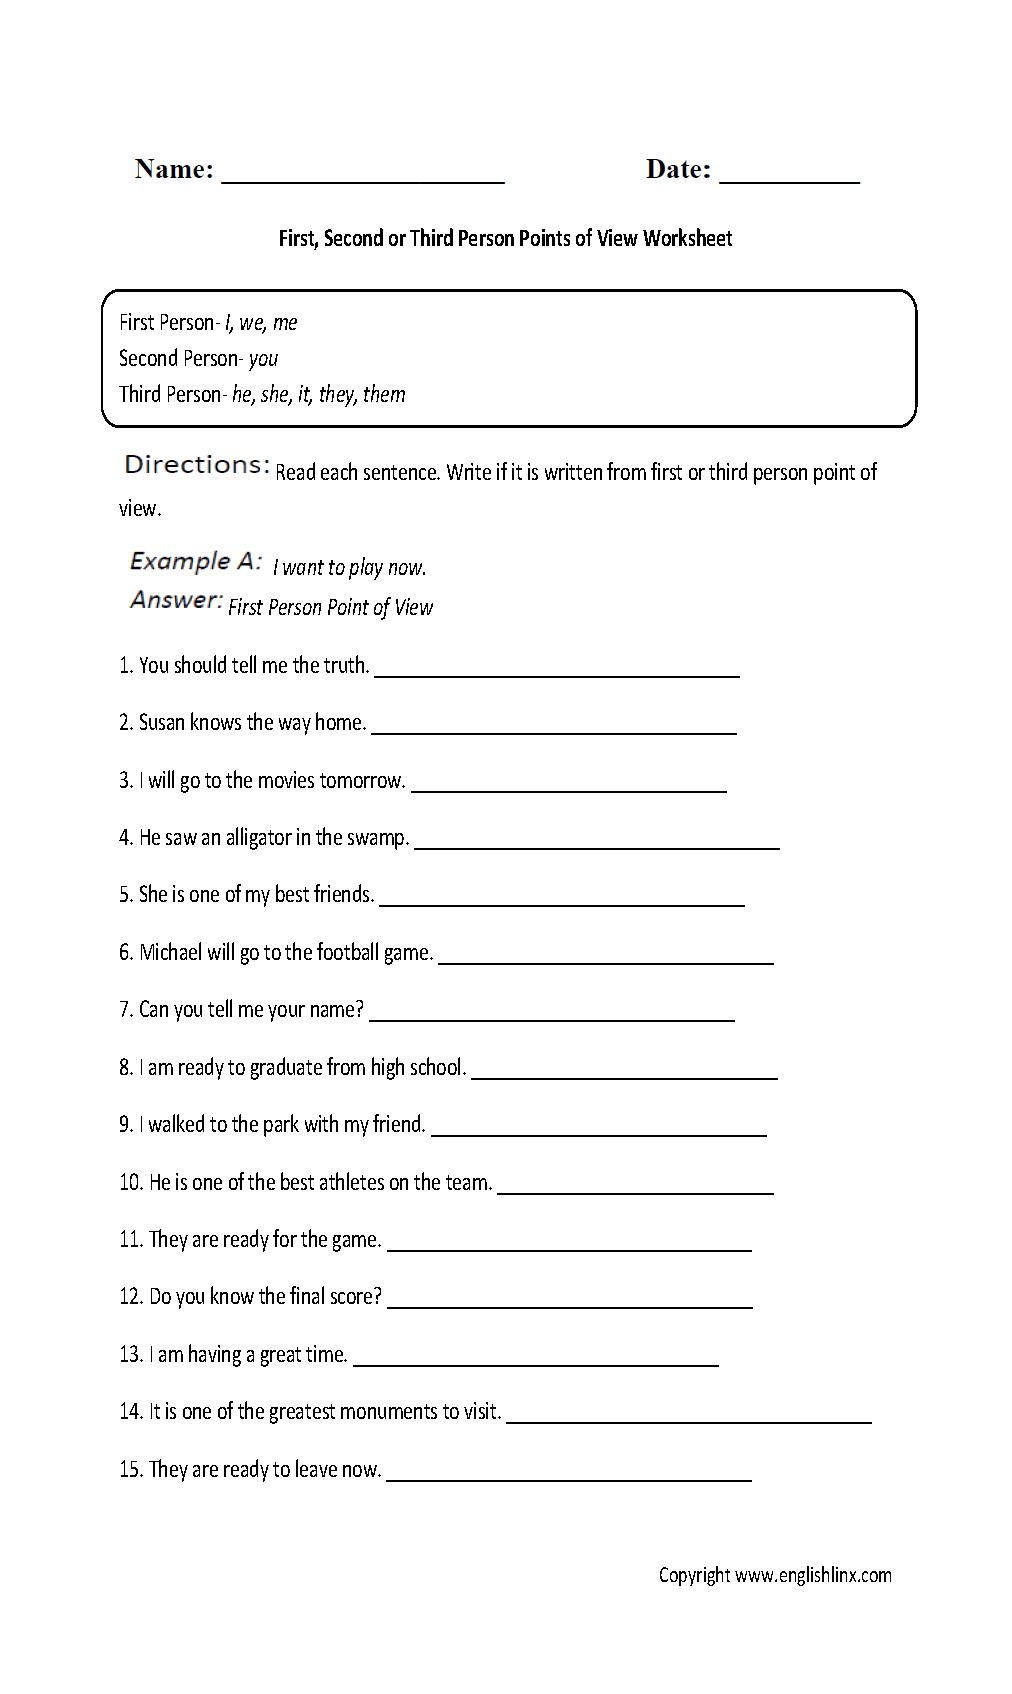 Weirdmailus  Marvelous Englishlinxcom  Point Of View Worksheets With Marvelous Point Of View Worksheet With Astounding Latitude And Longitude Worksheets Pdf Also Spelling Worksheets For Grade  In Addition Variation Worksheet And Vocabulary Building Worksheets As Well As Pemdas Practice Worksheet Additionally Animal Cell Coloring Worksheet Answers From Englishlinxcom With Weirdmailus  Marvelous Englishlinxcom  Point Of View Worksheets With Astounding Point Of View Worksheet And Marvelous Latitude And Longitude Worksheets Pdf Also Spelling Worksheets For Grade  In Addition Variation Worksheet From Englishlinxcom